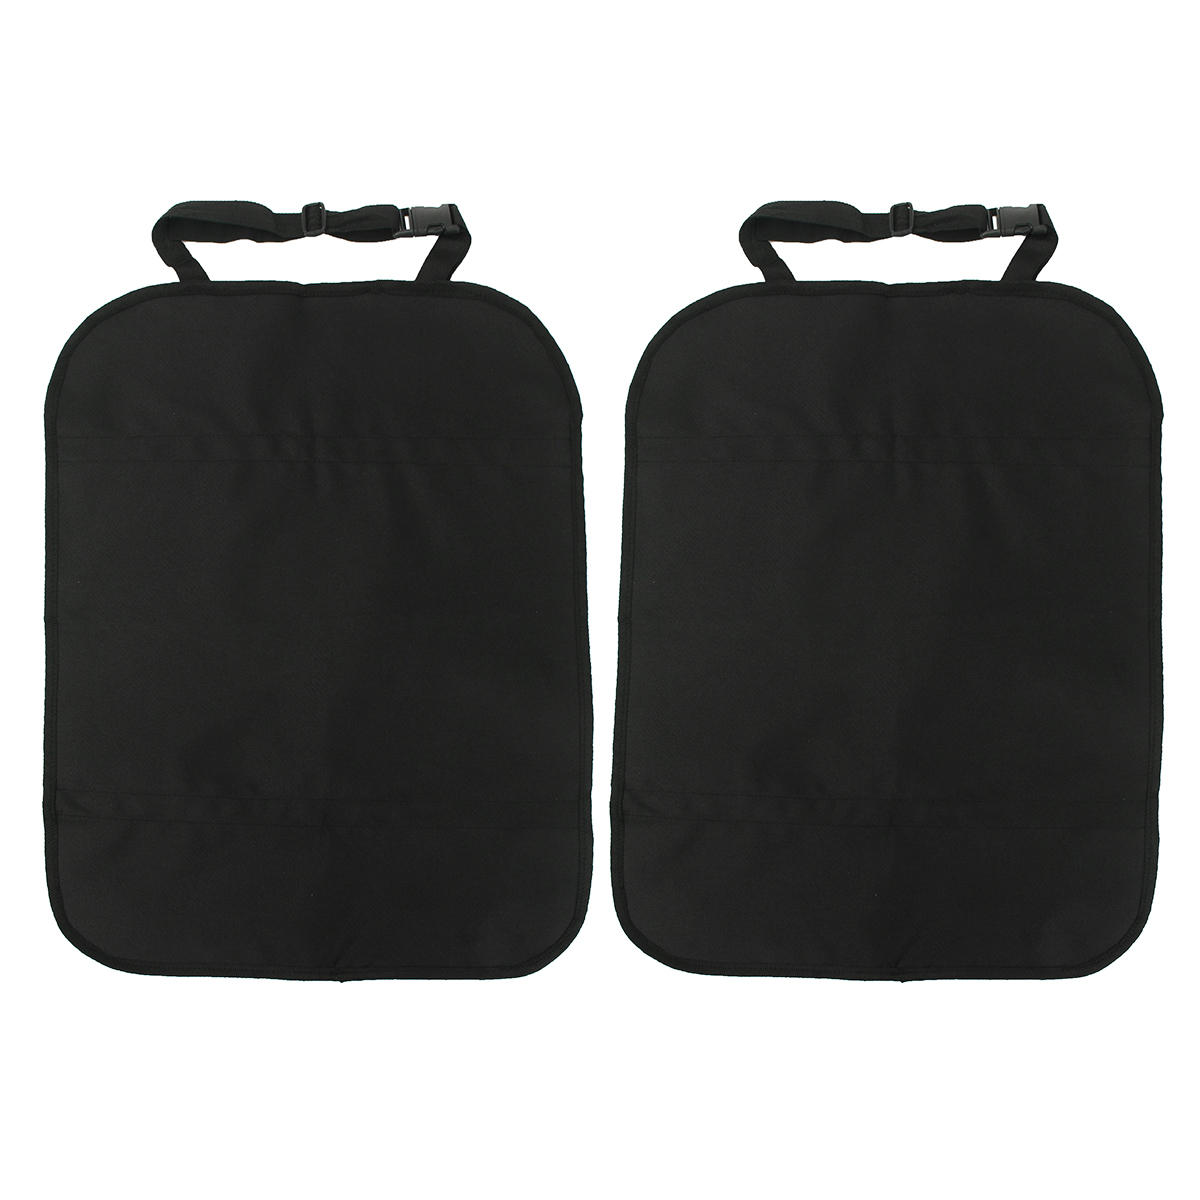 2pcs back seat protector car seat kids baby kick mat auto cleaning 2pcs back seat protector car seat kids baby kick mat auto cleaning cushion cover set fandeluxe Choice Image